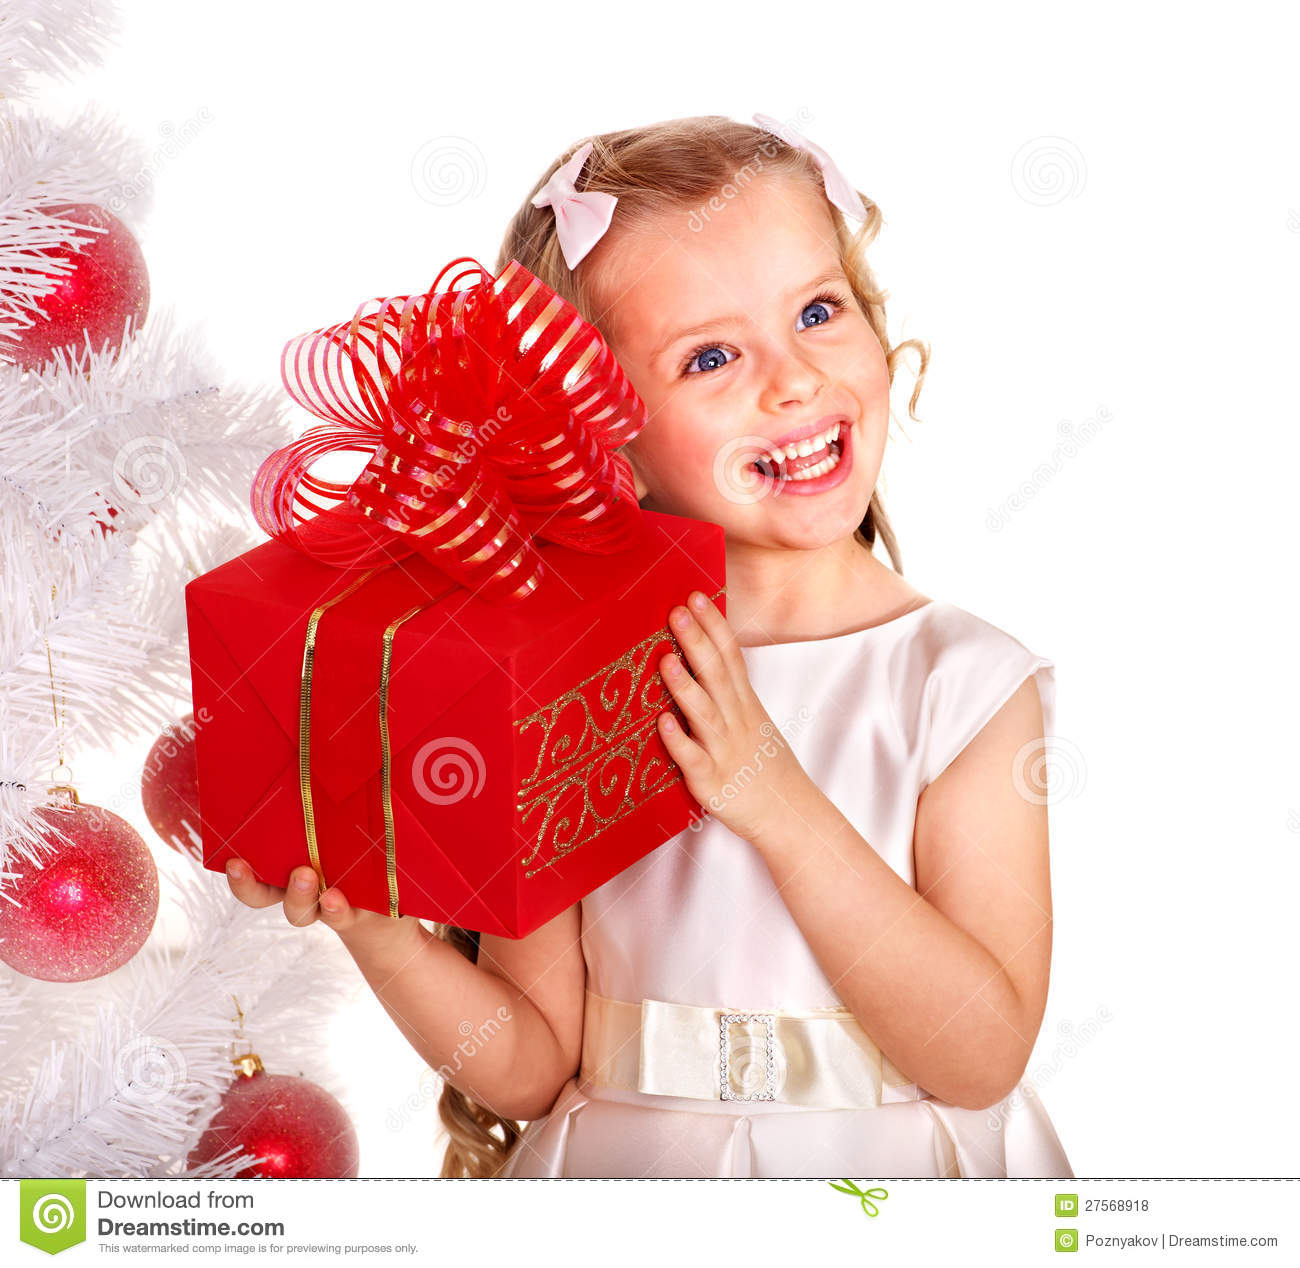 Kid with red Christmas gift box.